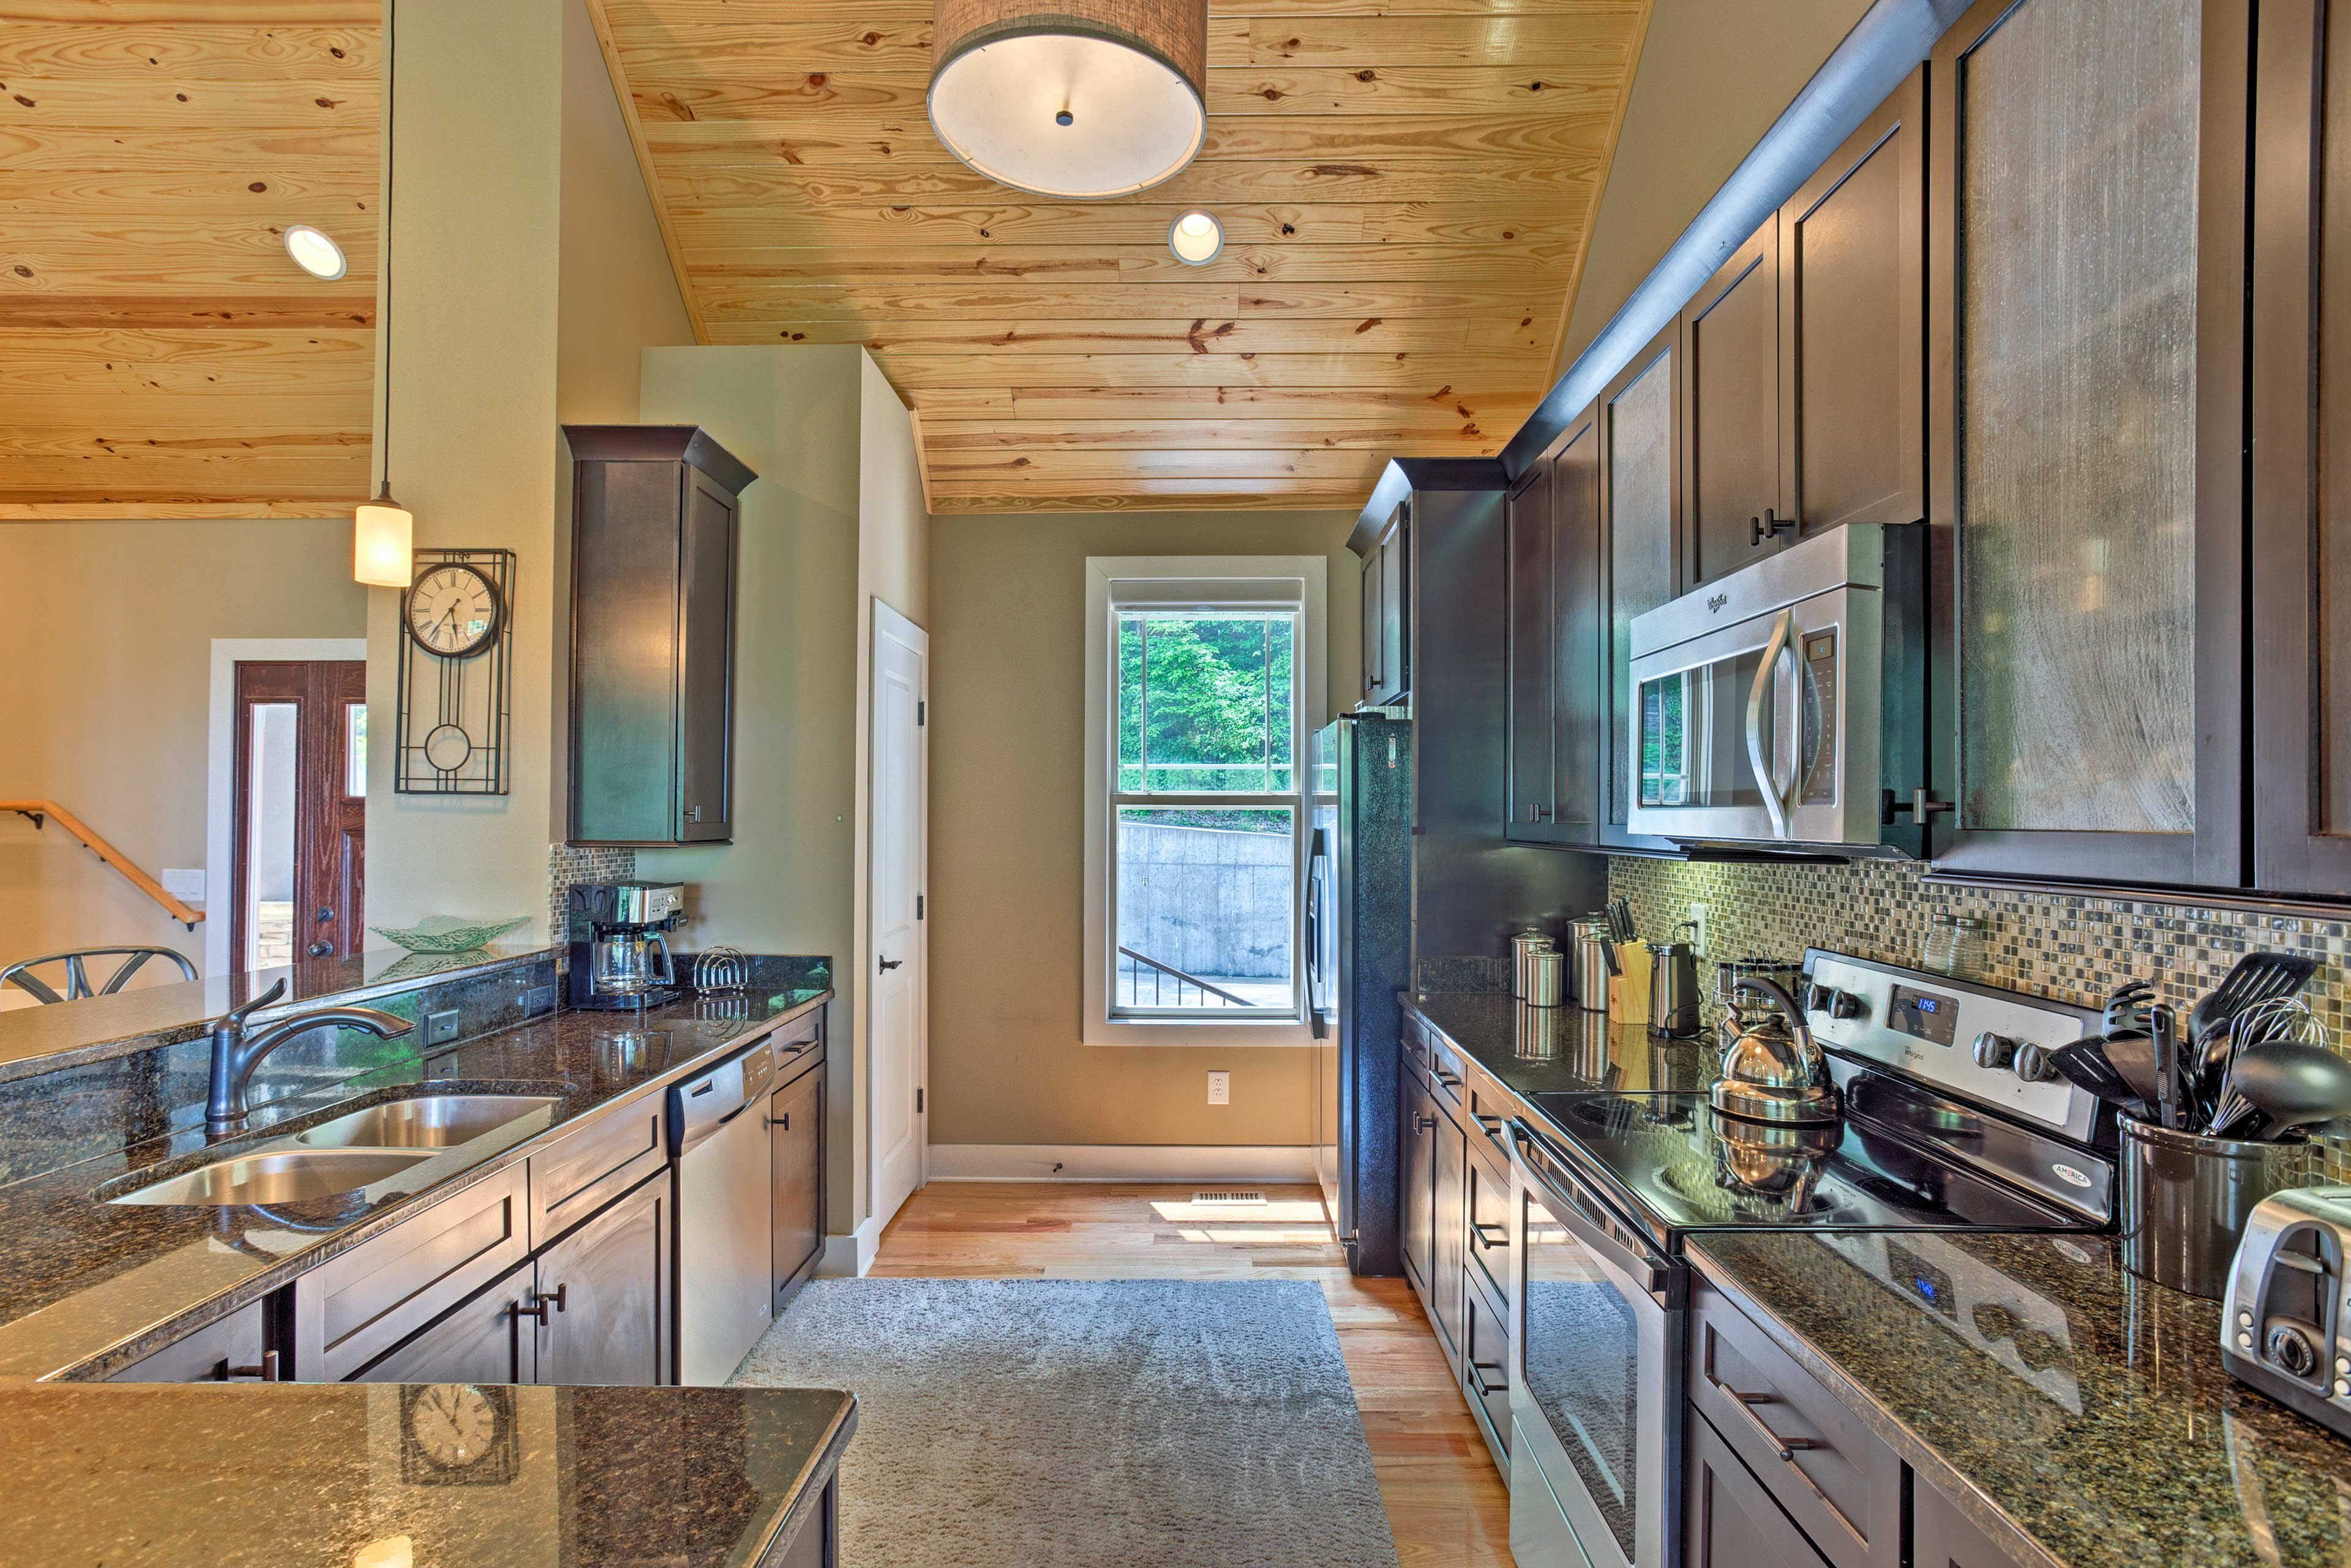 Cooking will be effortless in the fully equipped kitchen.